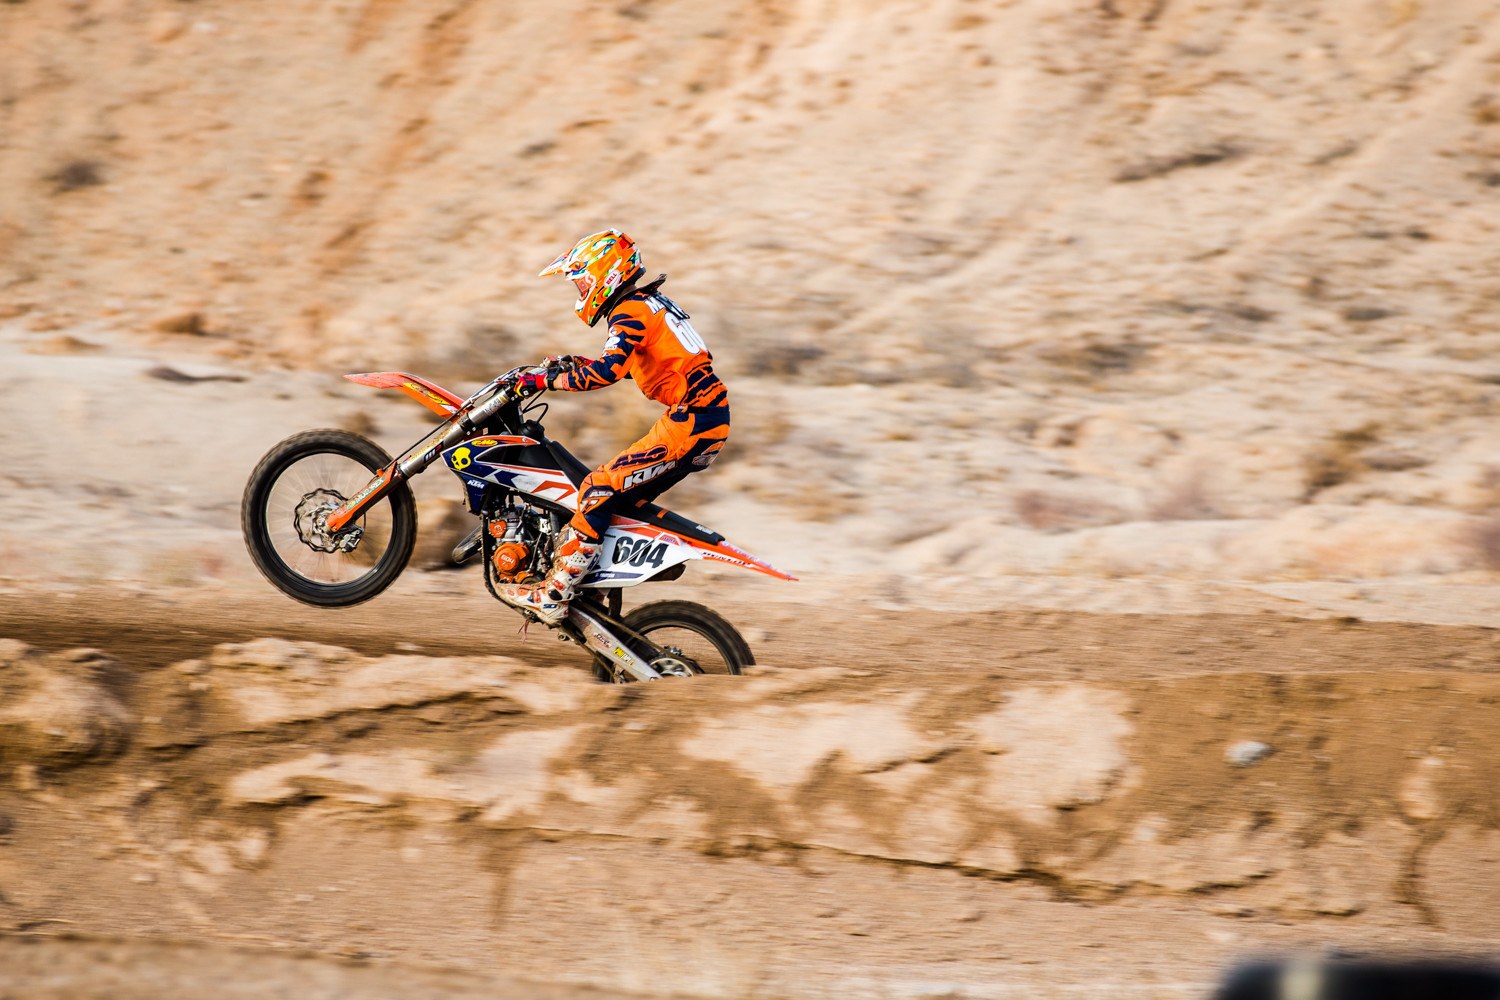 Max Miller - Gallery: 2017 AMA Arizona Open Amateur National - Friday - Motocross Pictures - Vital MX